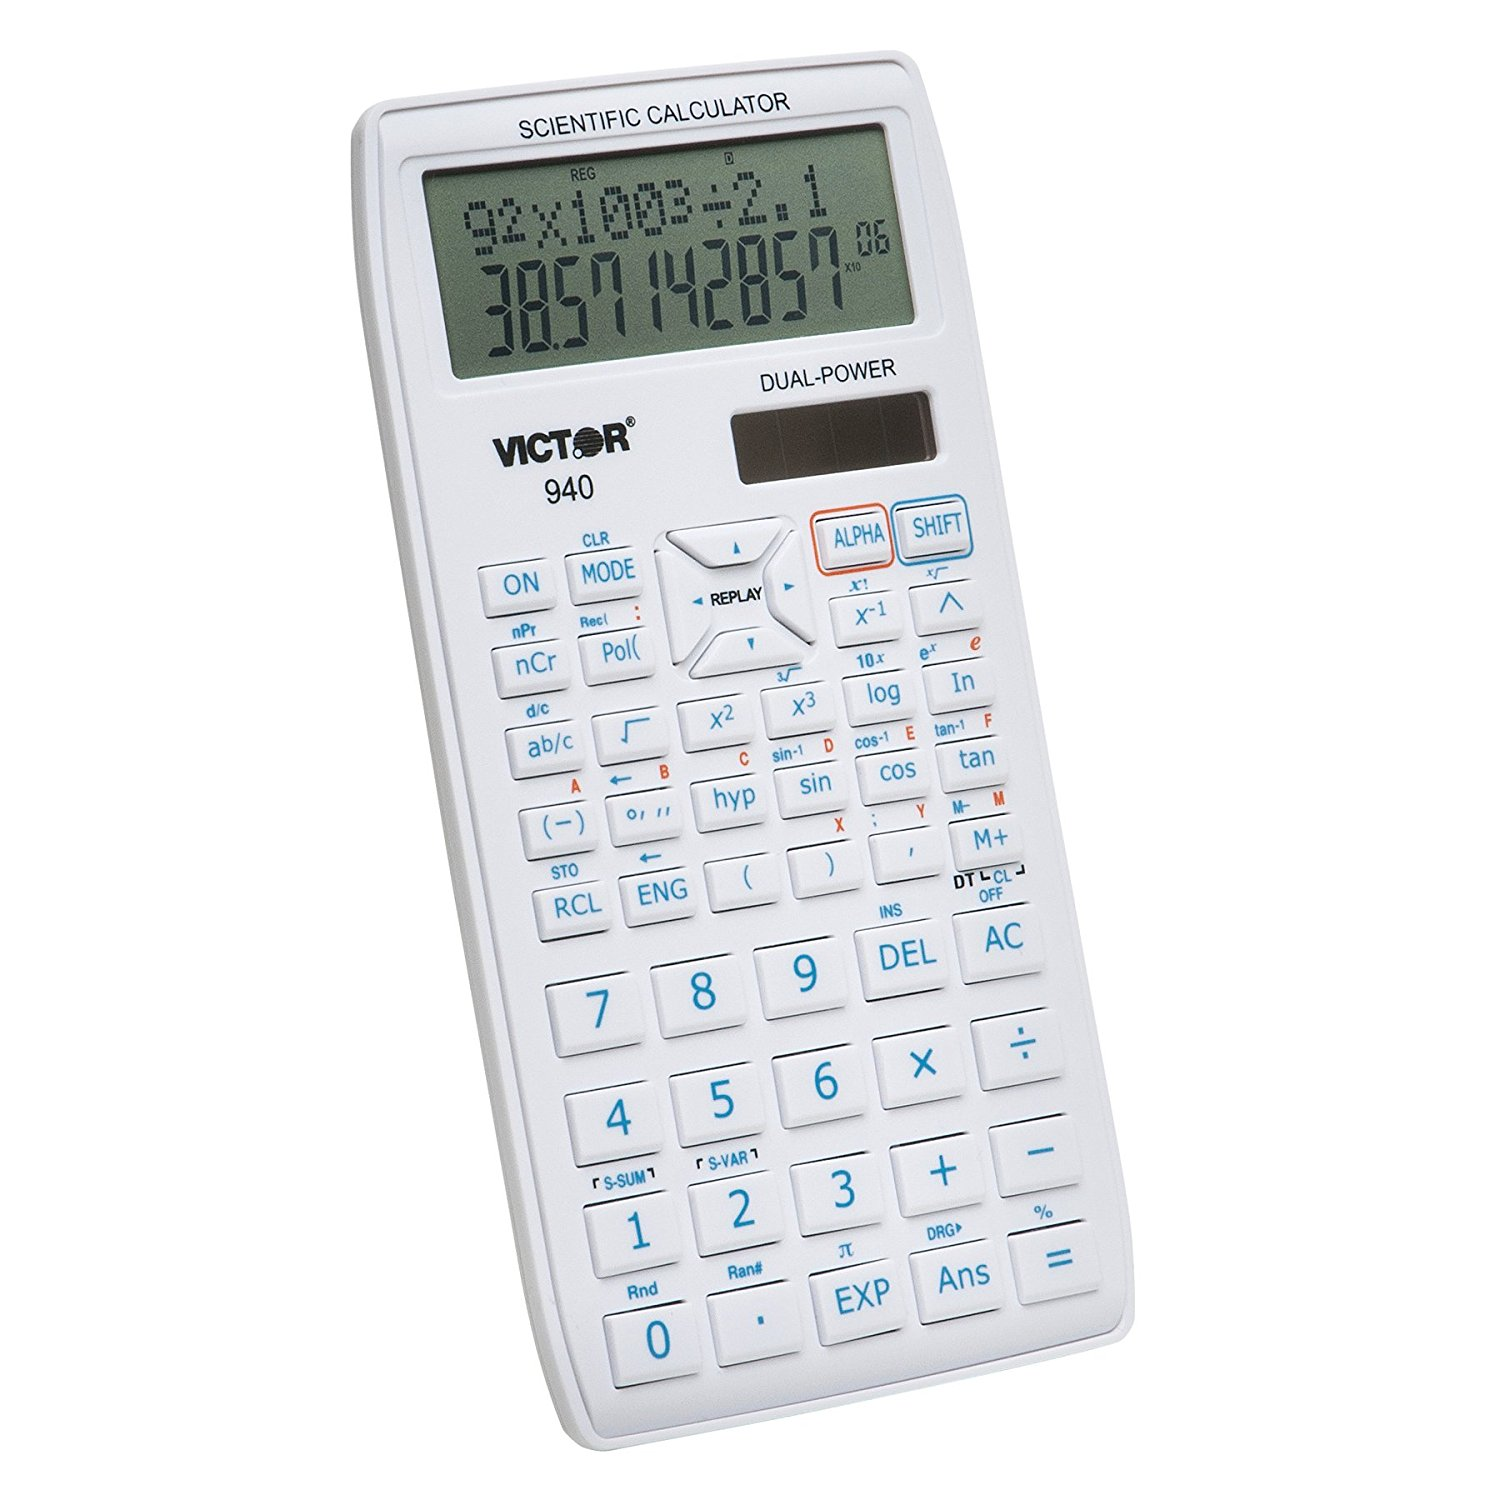 Victor 940 Scientific Calculator